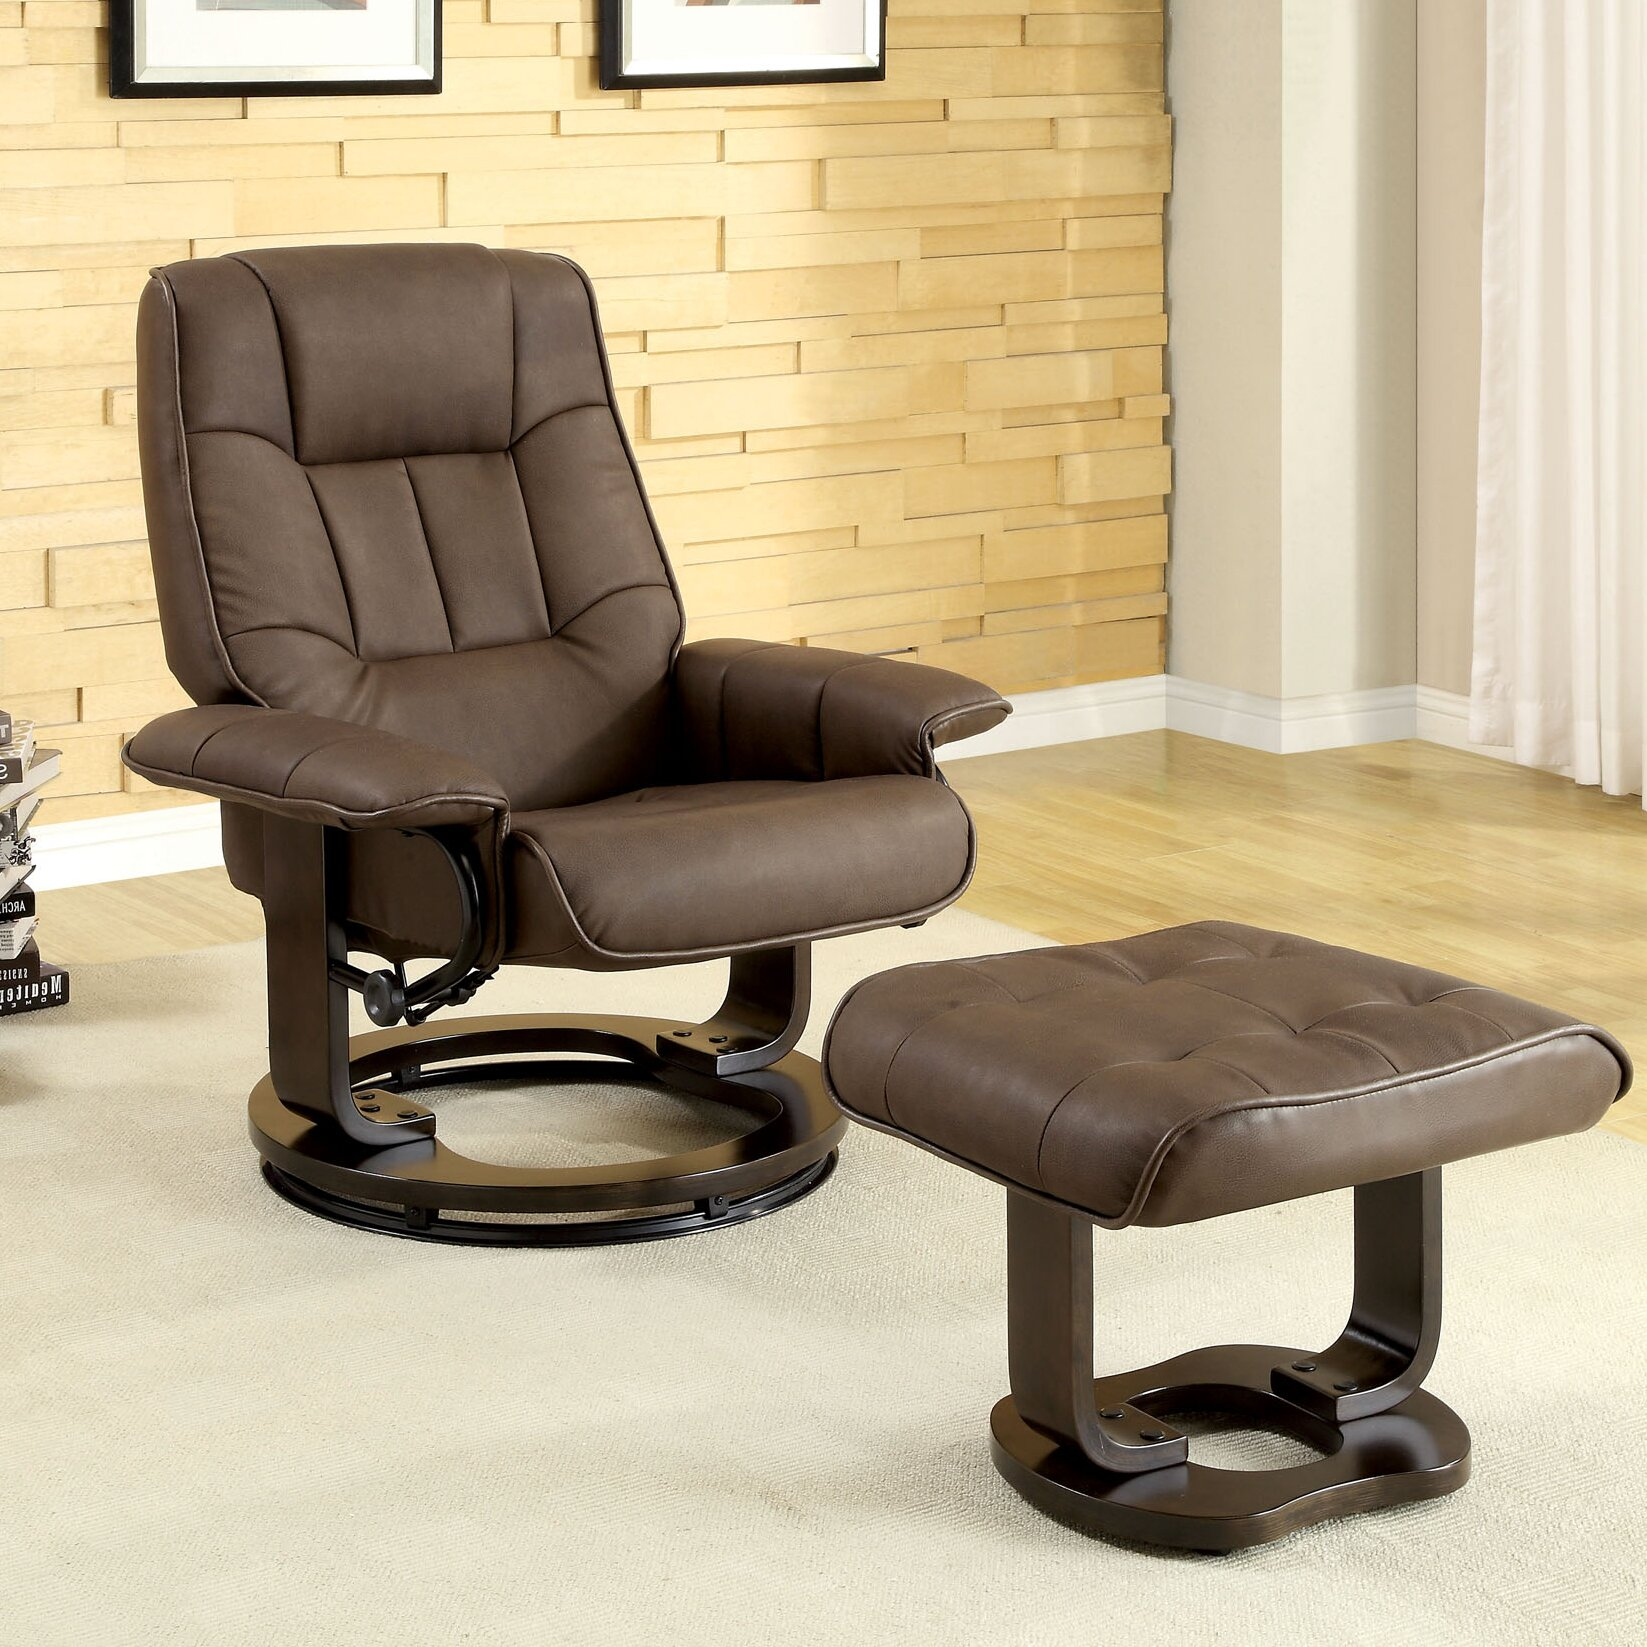 Small Chair With Ottoman: Hokku Designs Leatherette Swivel Recliner Chair And